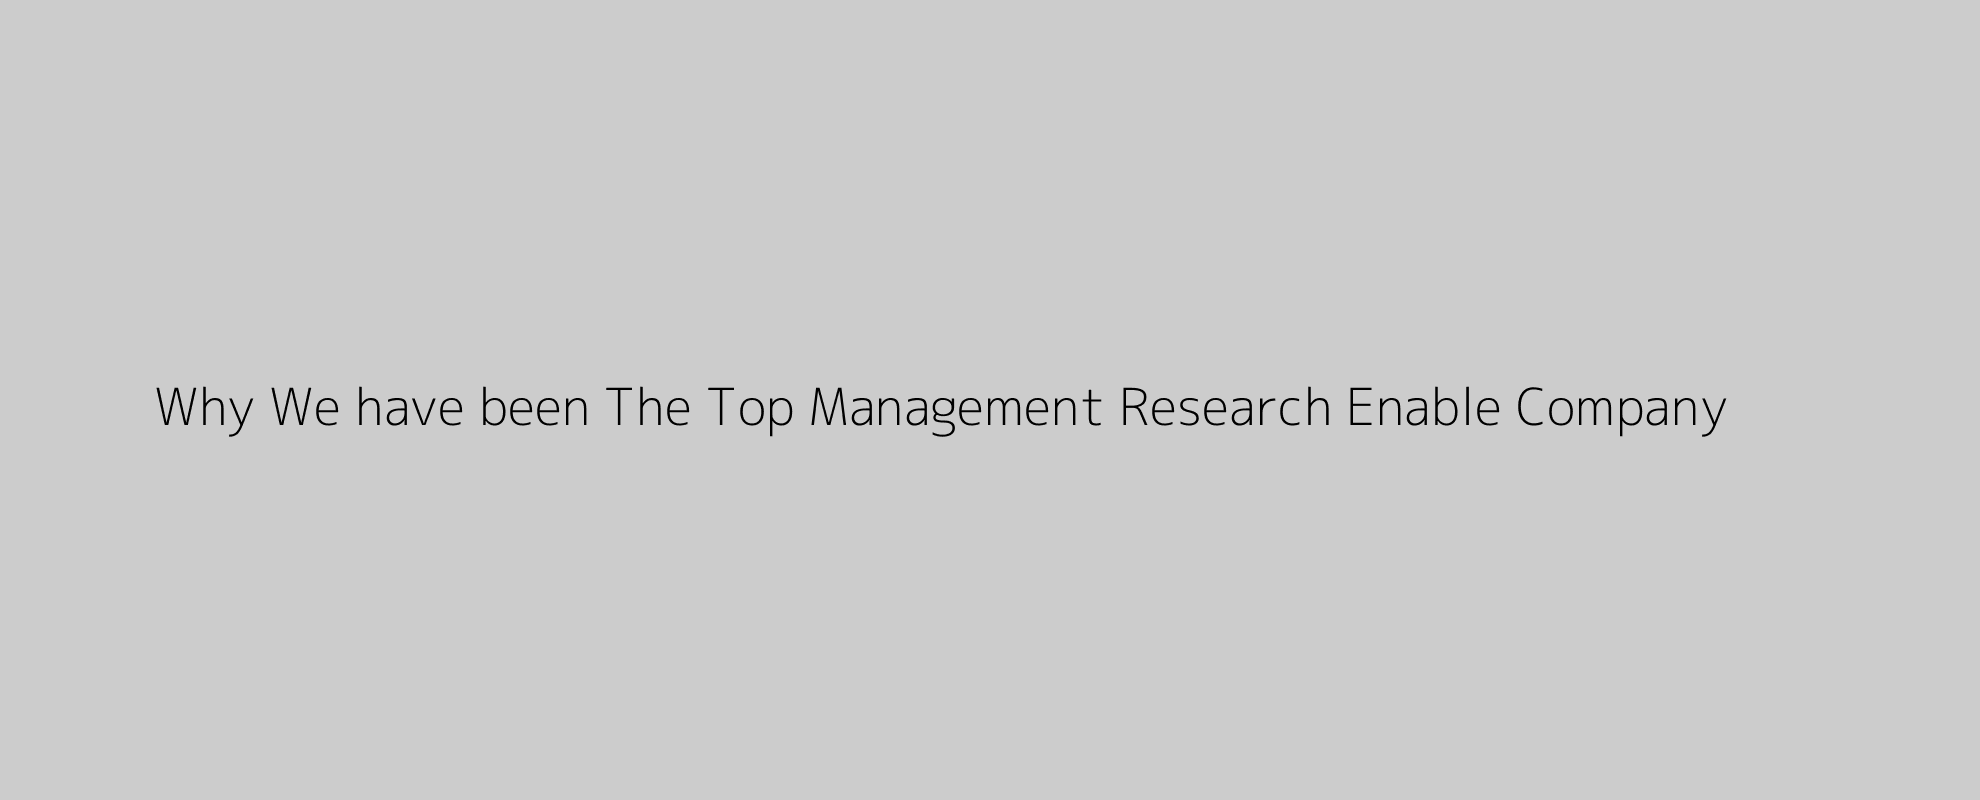 Why We have been The Top Management Research Enable Company